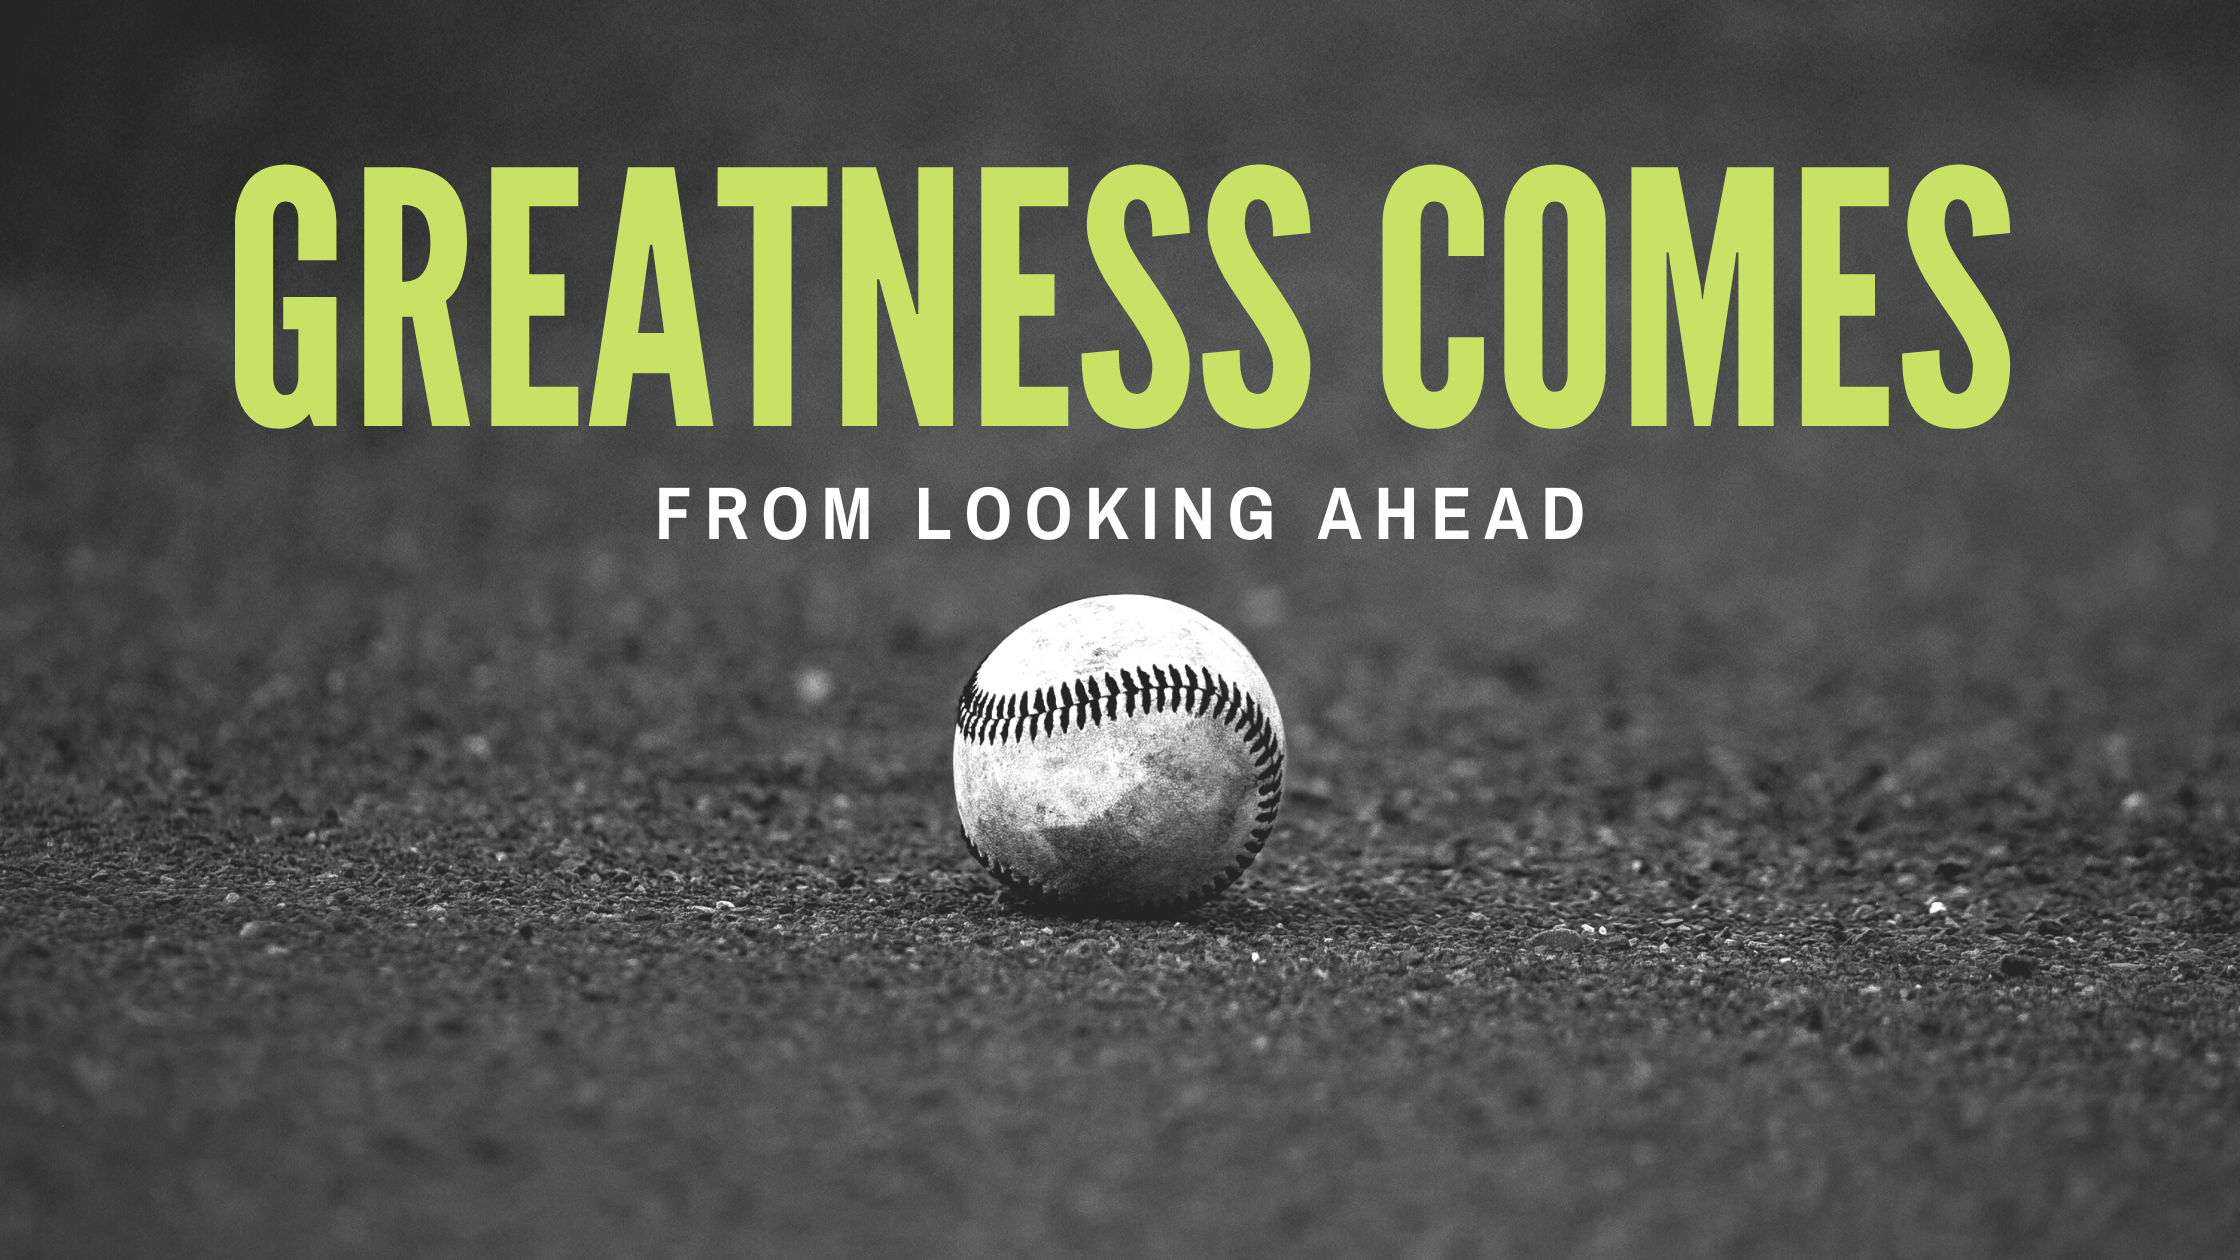 Greatness Comes from Looking Ahead